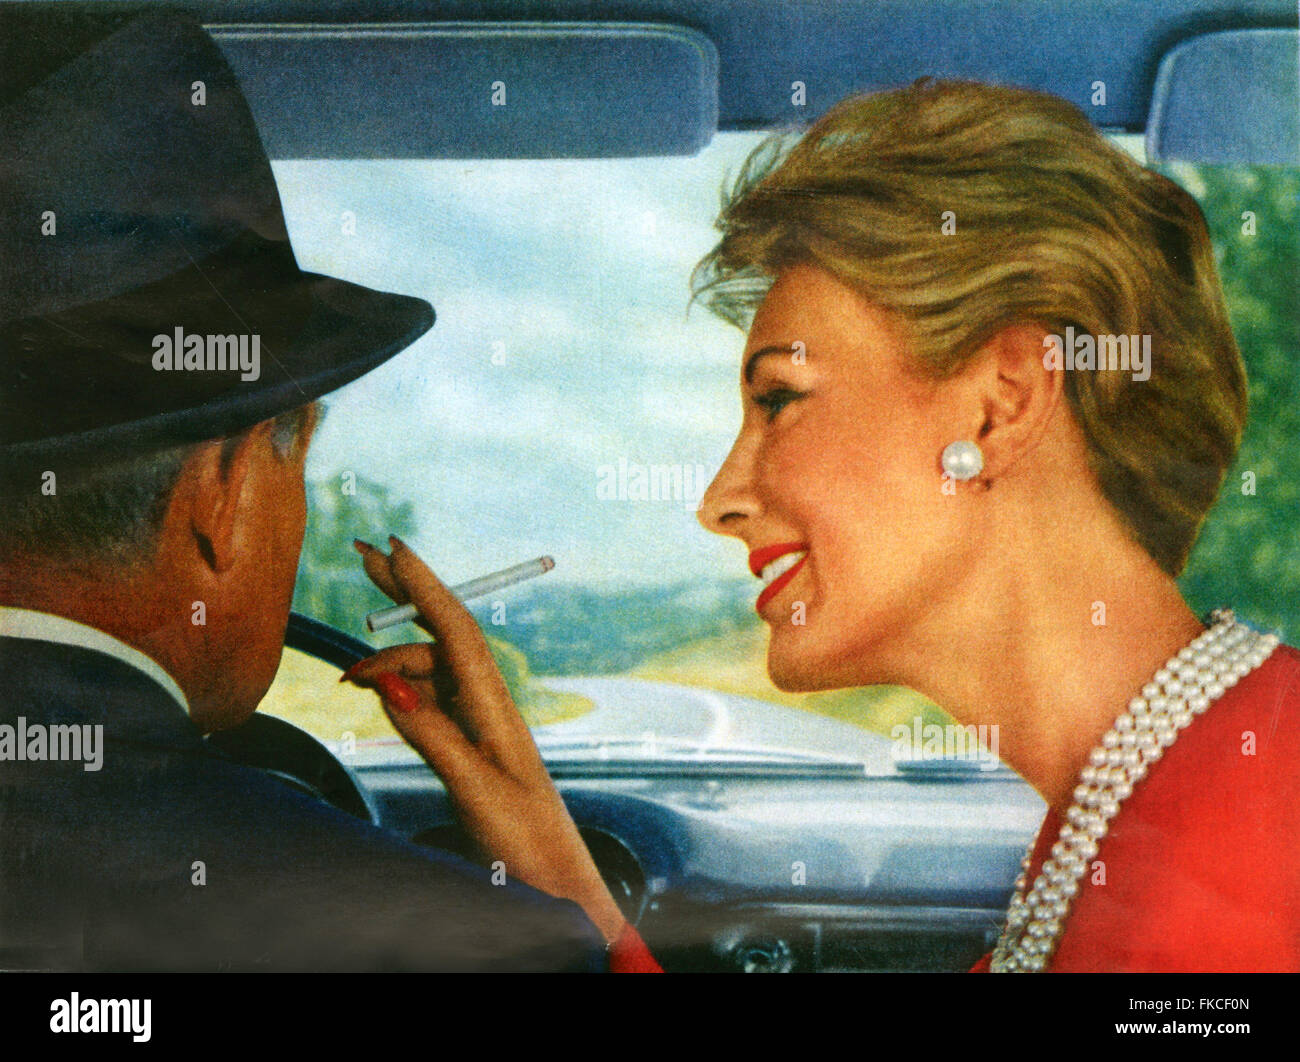 https://c8.alamy.com/comp/FKCF0N/1960s-usa-smoking-magazine-advert-detail-FKCF0N.jpg